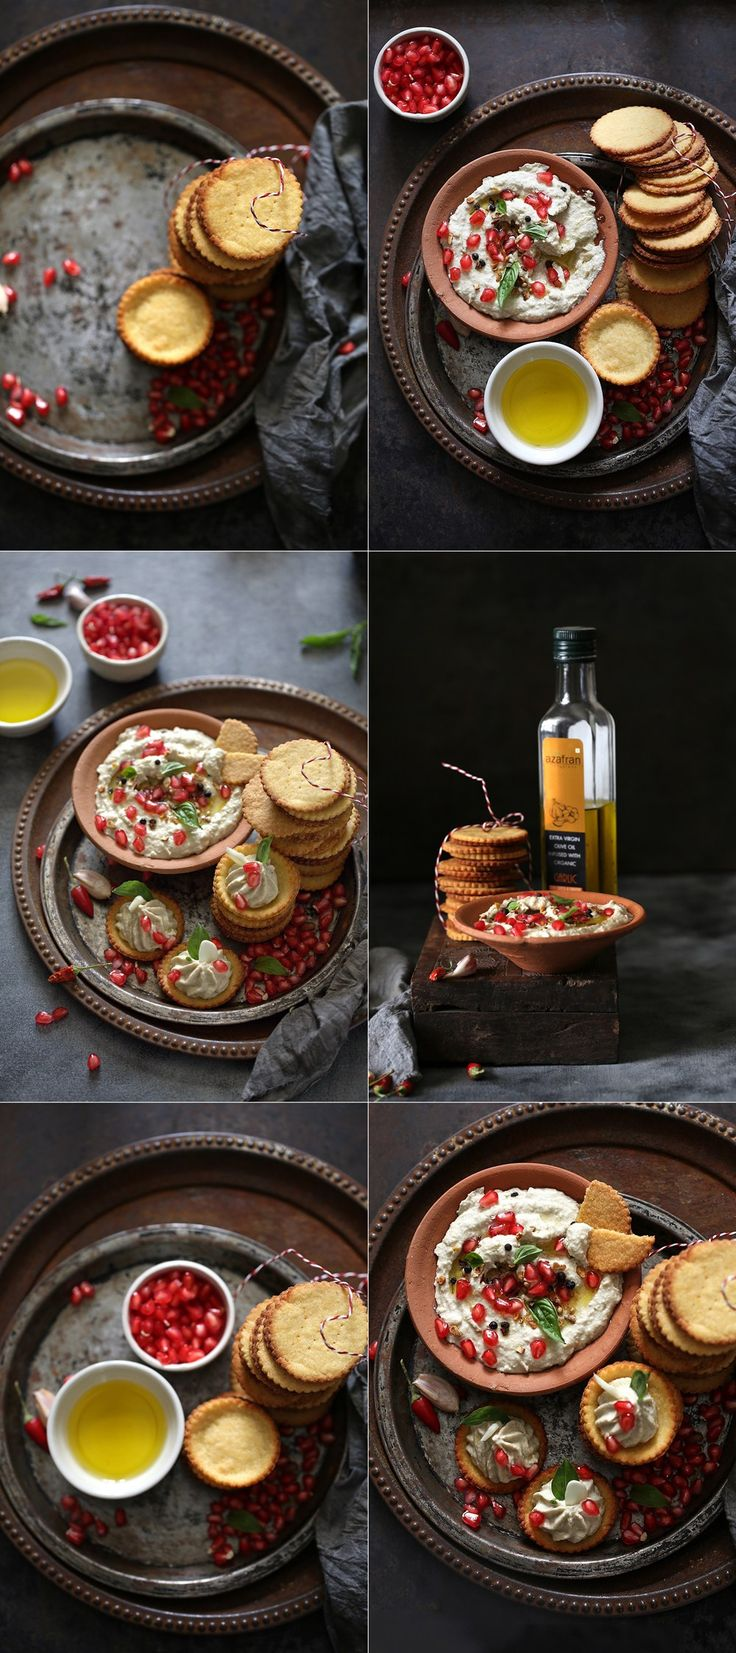 Polenta Cheese Crackers and a cracker of an Eggplant Melon Seed Dip … with infused olive oils - Passionate About Baking